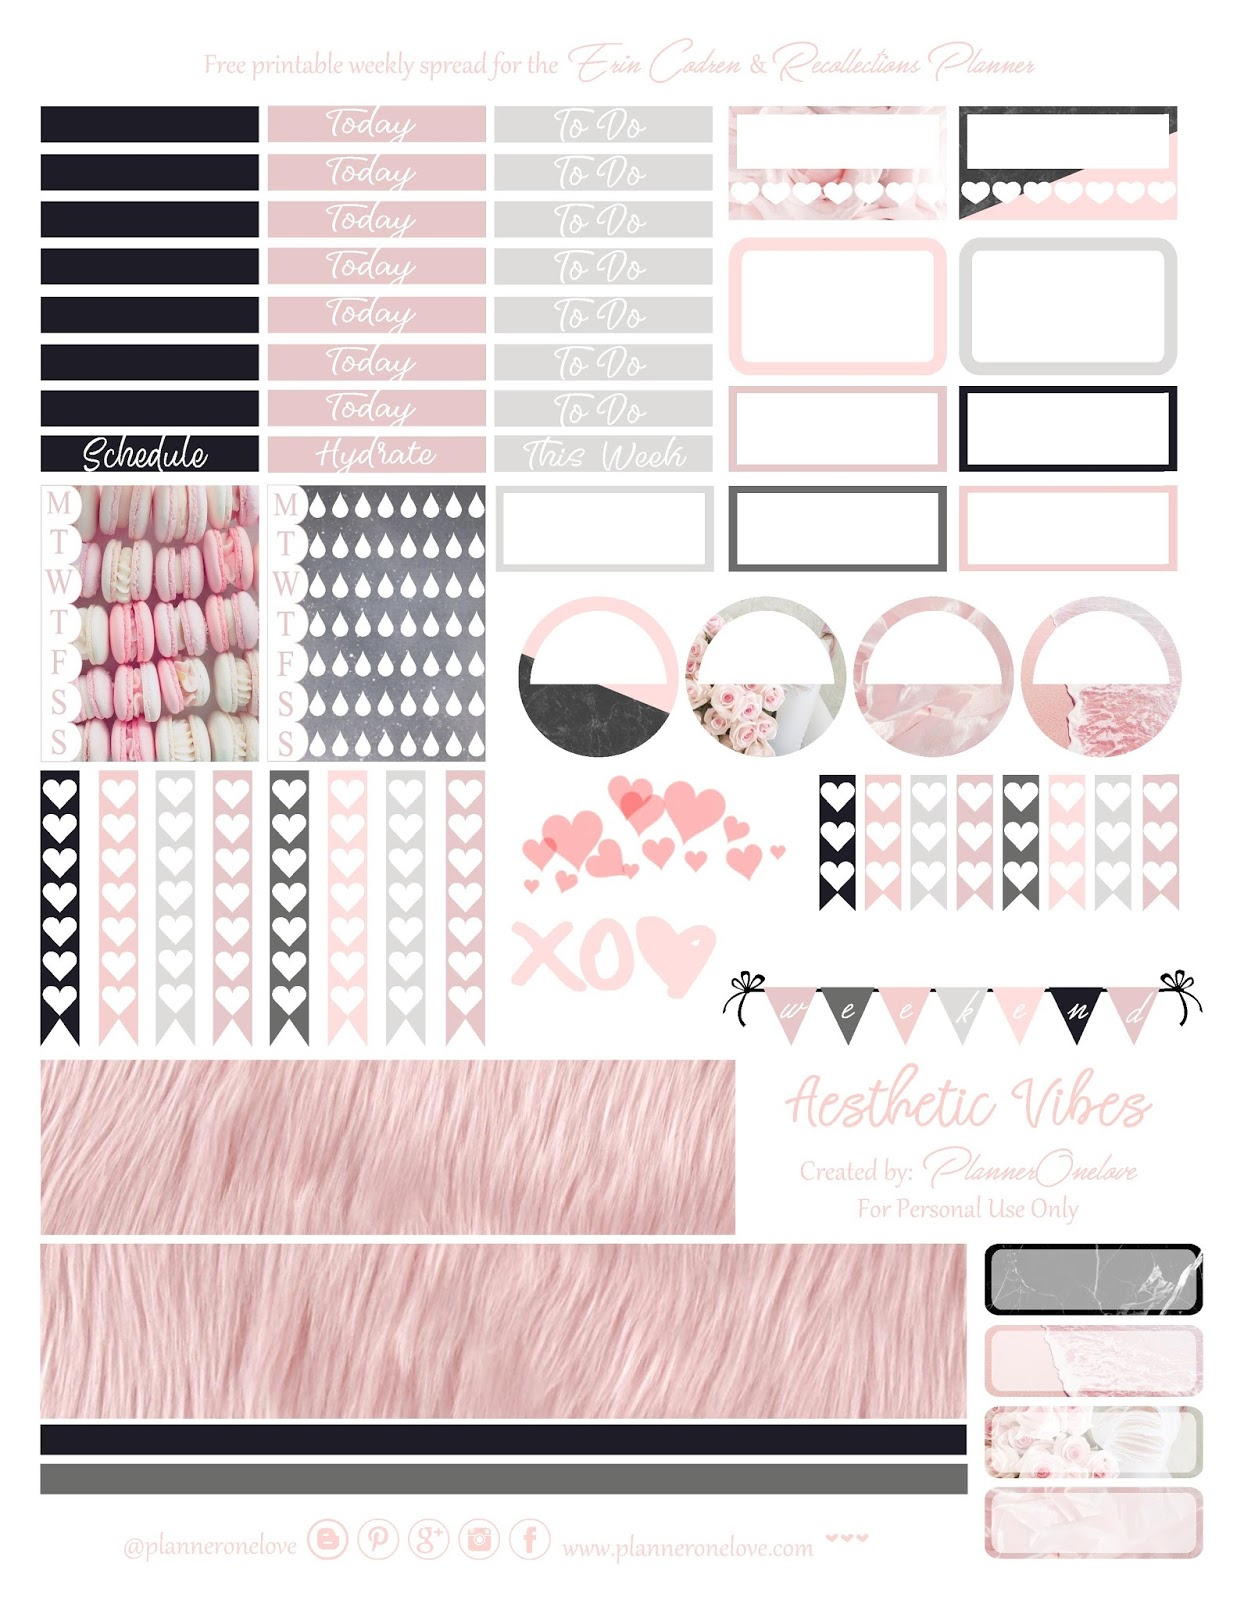 graphic relating to Aesthetic Stickers Printable titled Cost-free Aesthetic Vibes Printable With Silhouette Studio Reduce